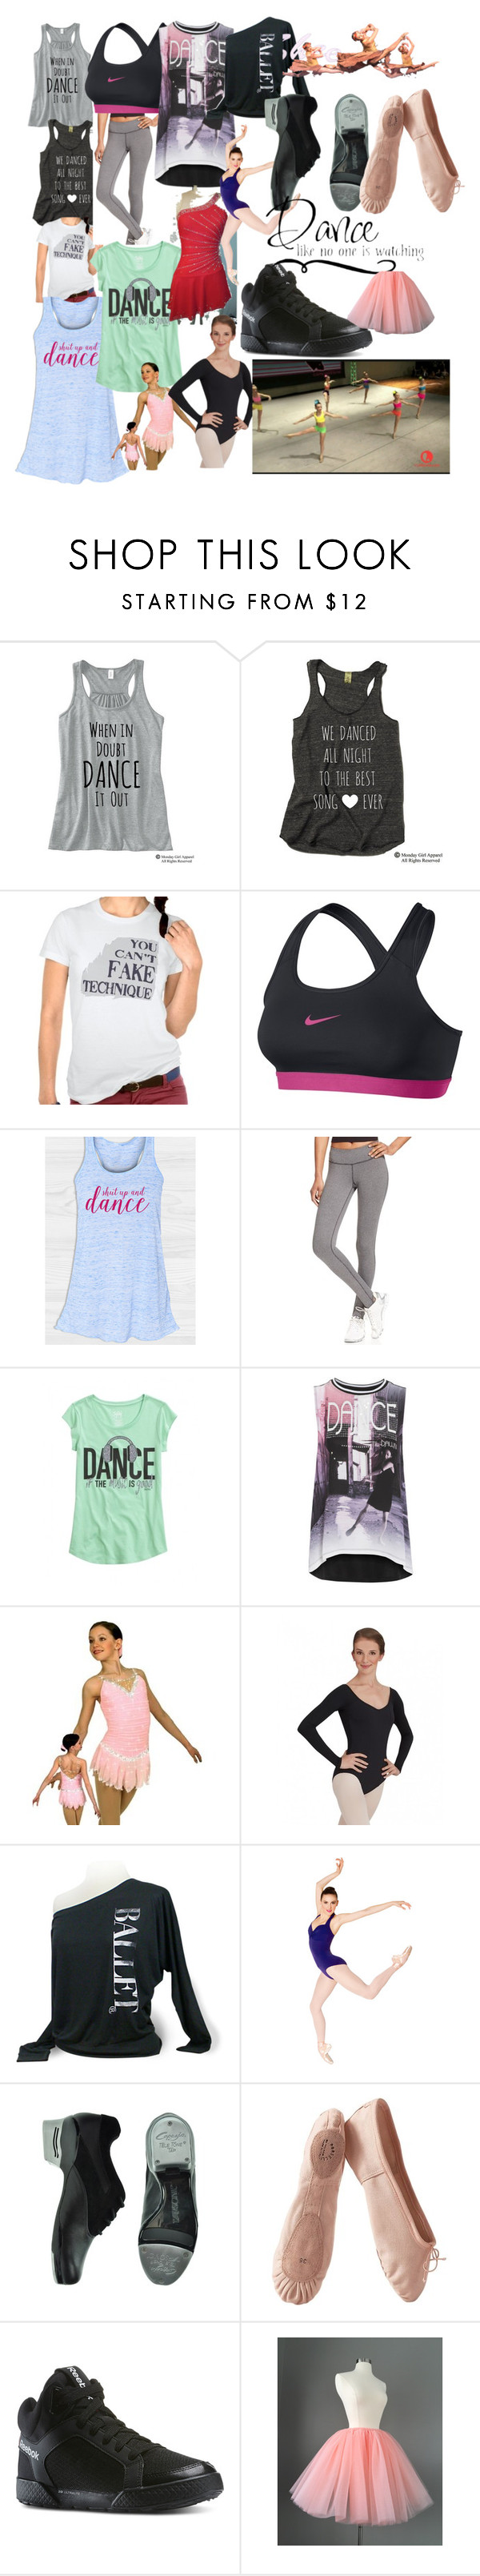 """Everything dance"" by sammyfashion4ever ❤ liked on Polyvore featuring NIKE, Ideology, Capezio, Porselli and Reebok"